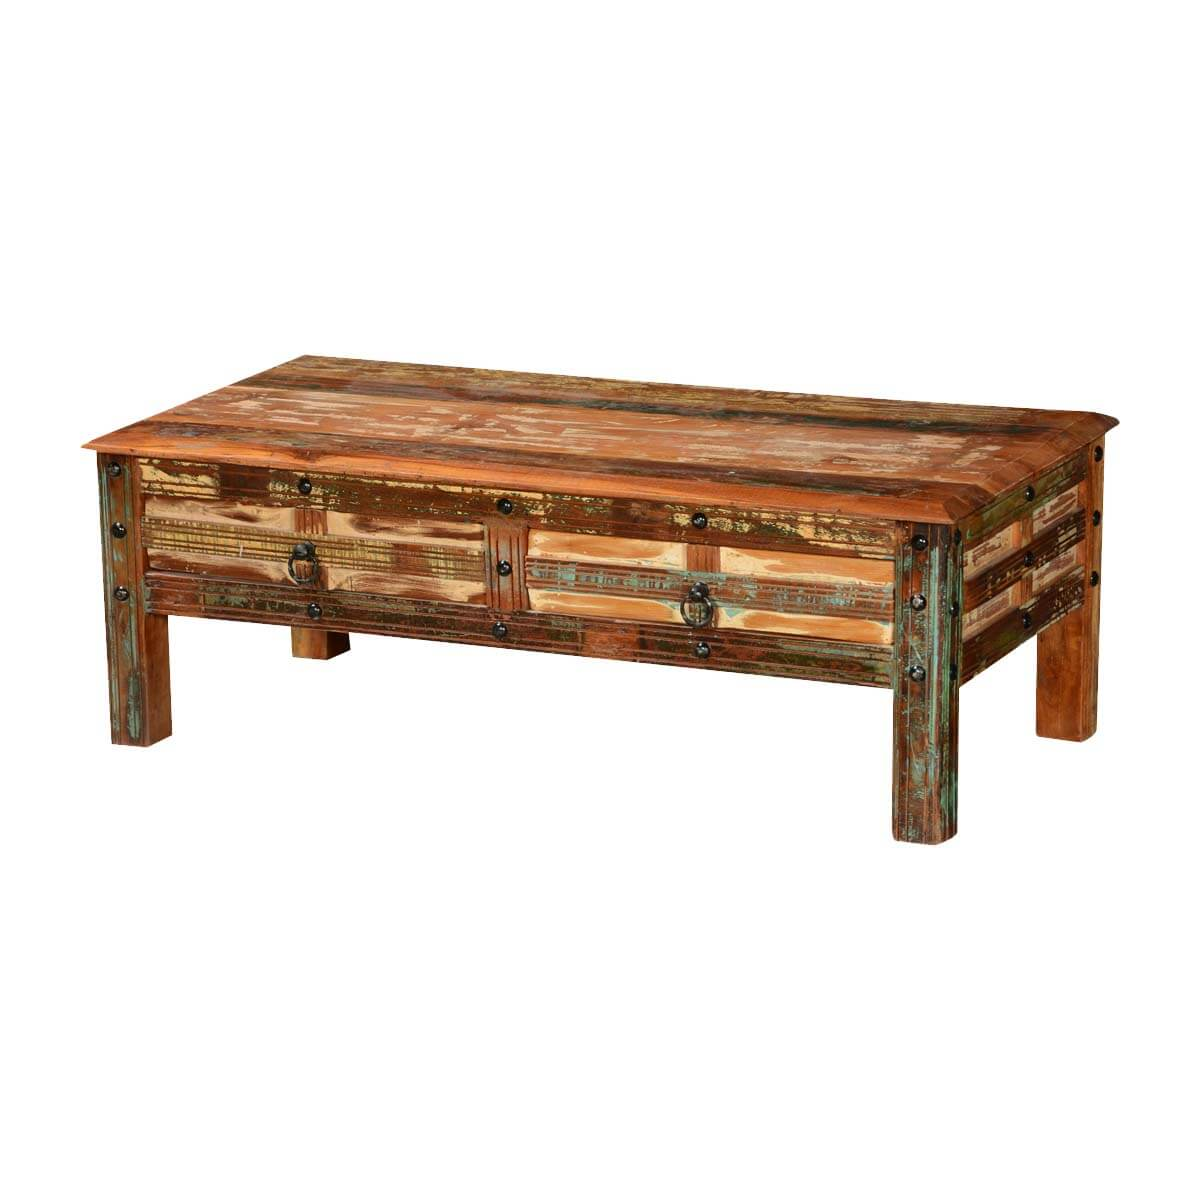 Pioneer rustic reclaimed wood drawer coffee table